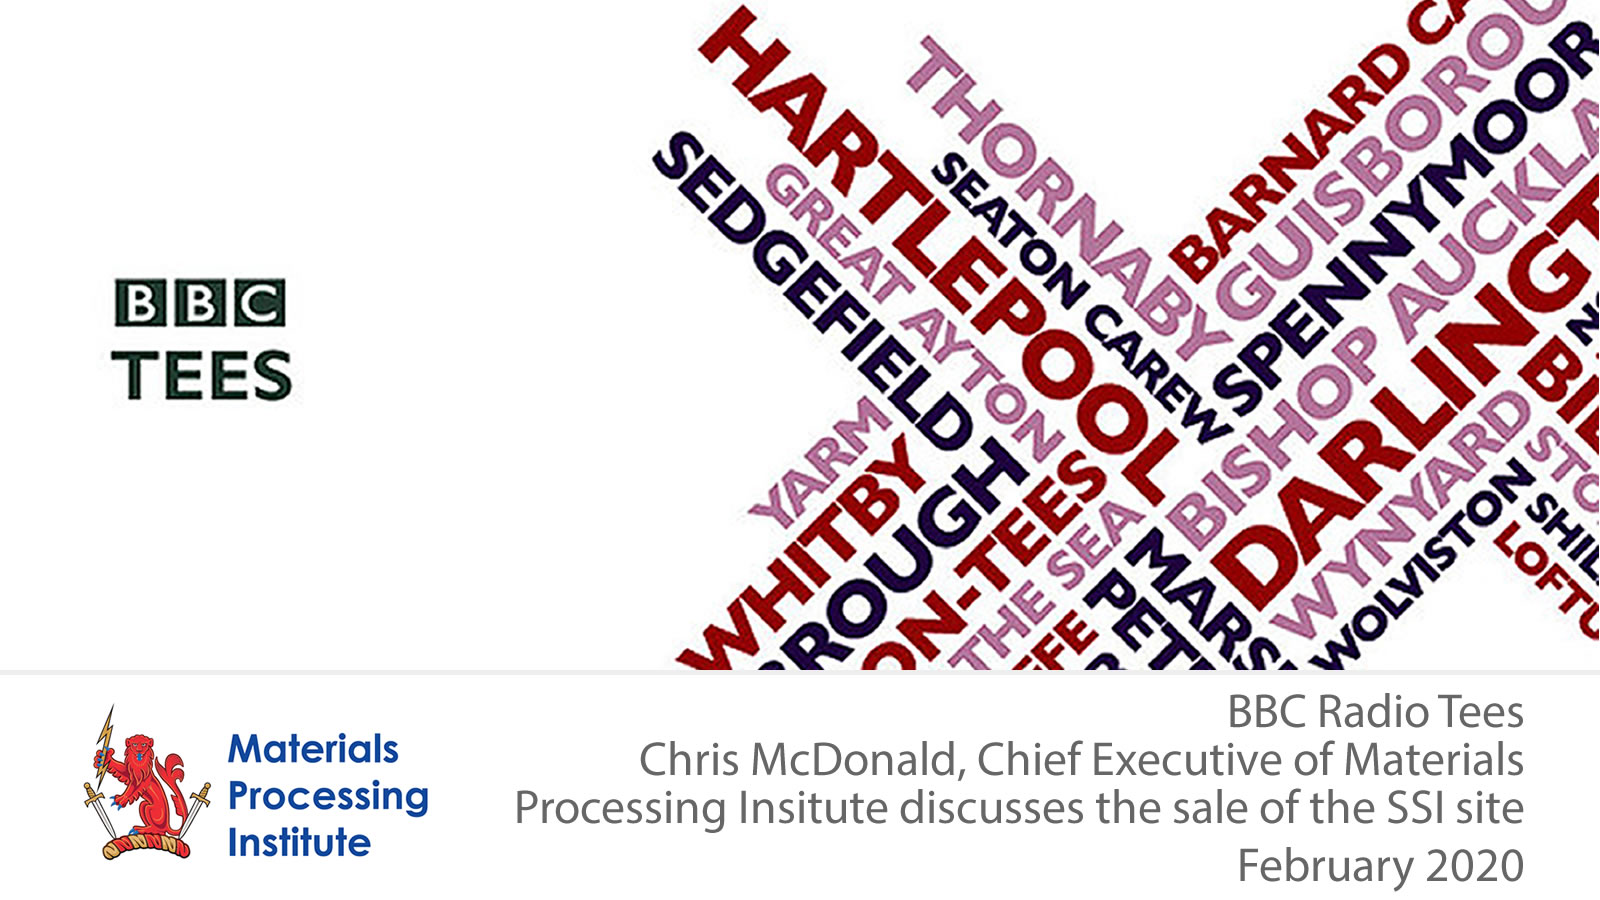 Chris McDonald, Chief Executive of Materials Processing Insitute discusses the sale of the SSI site - February 2020